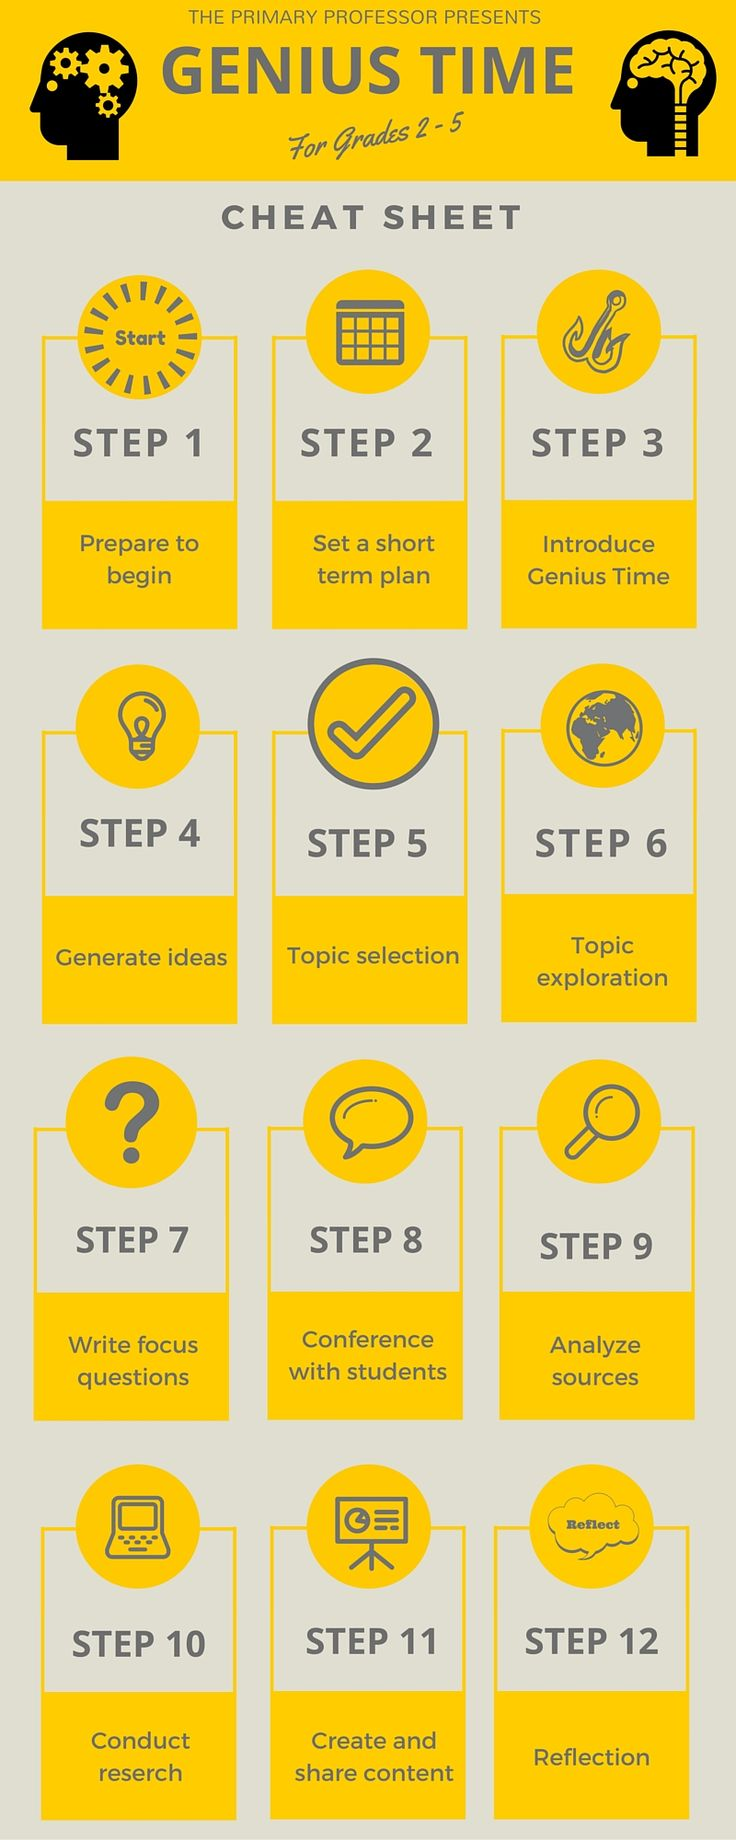 Thinking about starting Genius Hour in your classroom? Click here for 6 Tips on creating a successful Genius Time experience in your elementary classroom.